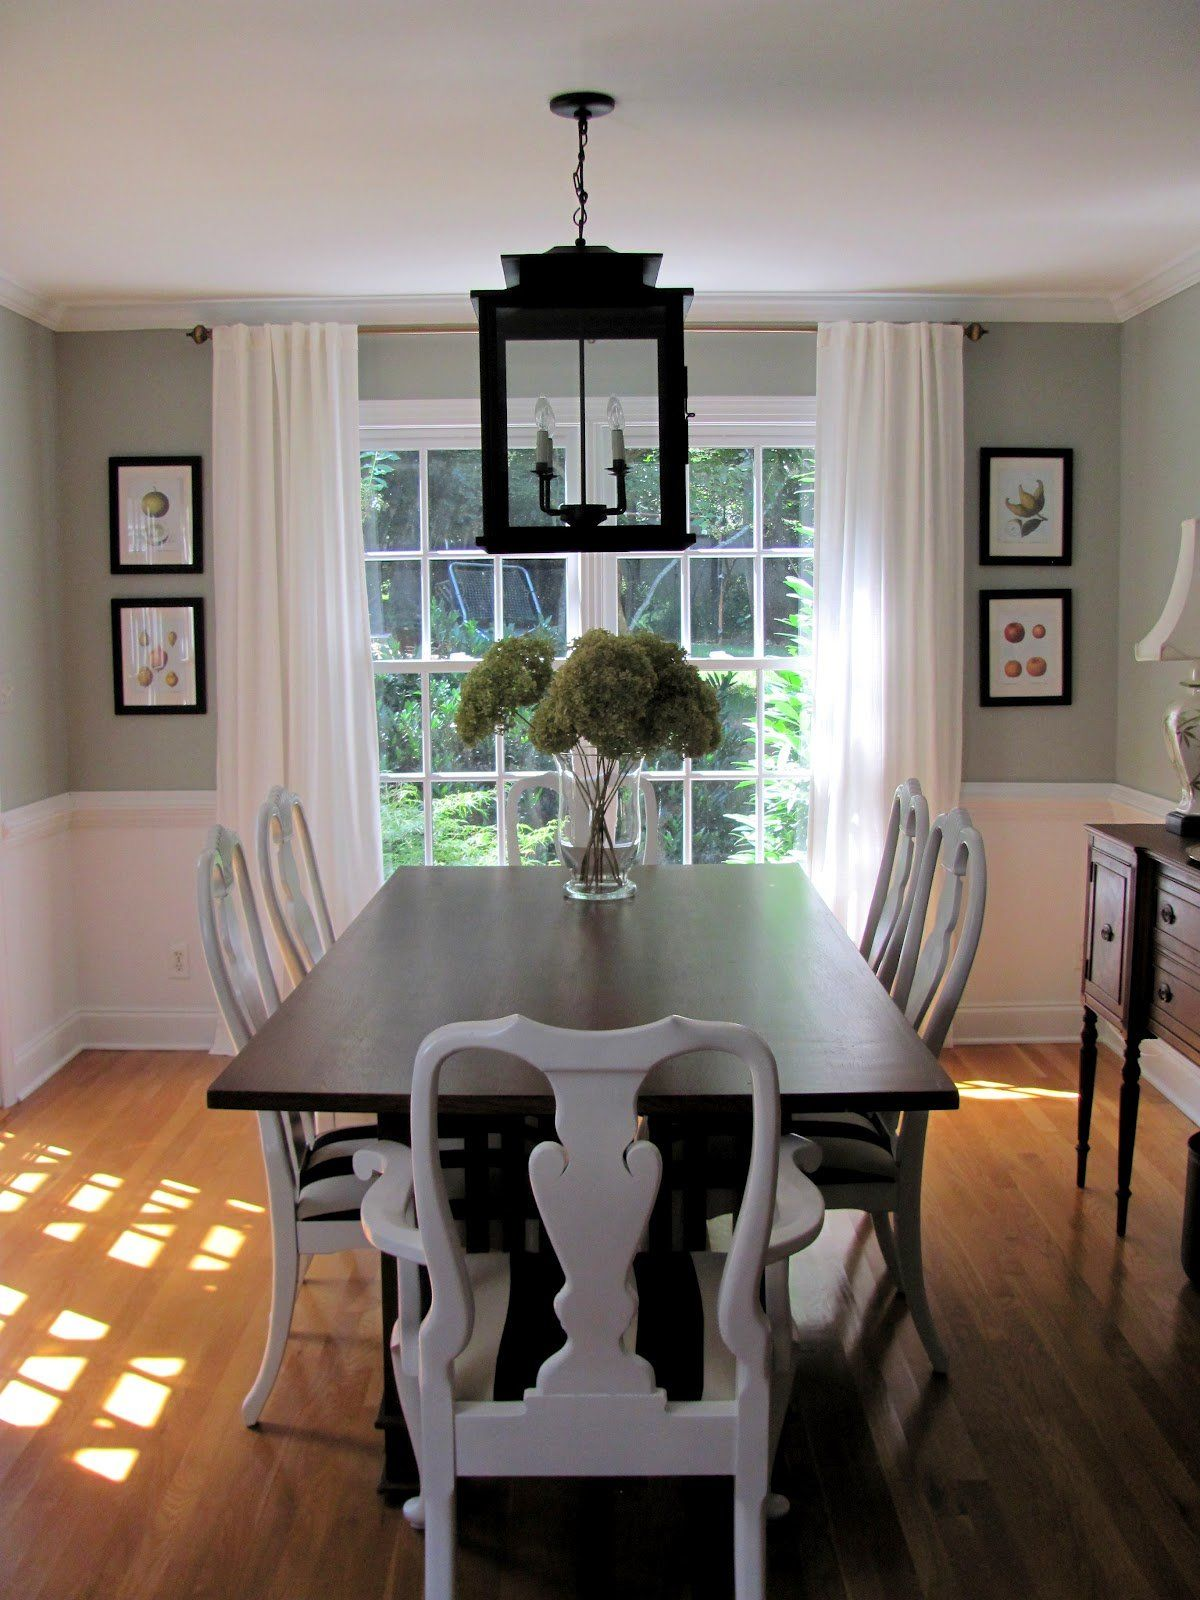 This Other Popular Dining Room Is A Little Less Cluttered The Hanging Lantern Above The Table Is Dining Room Makeover Dining Room Small Farmhouse Dining Room